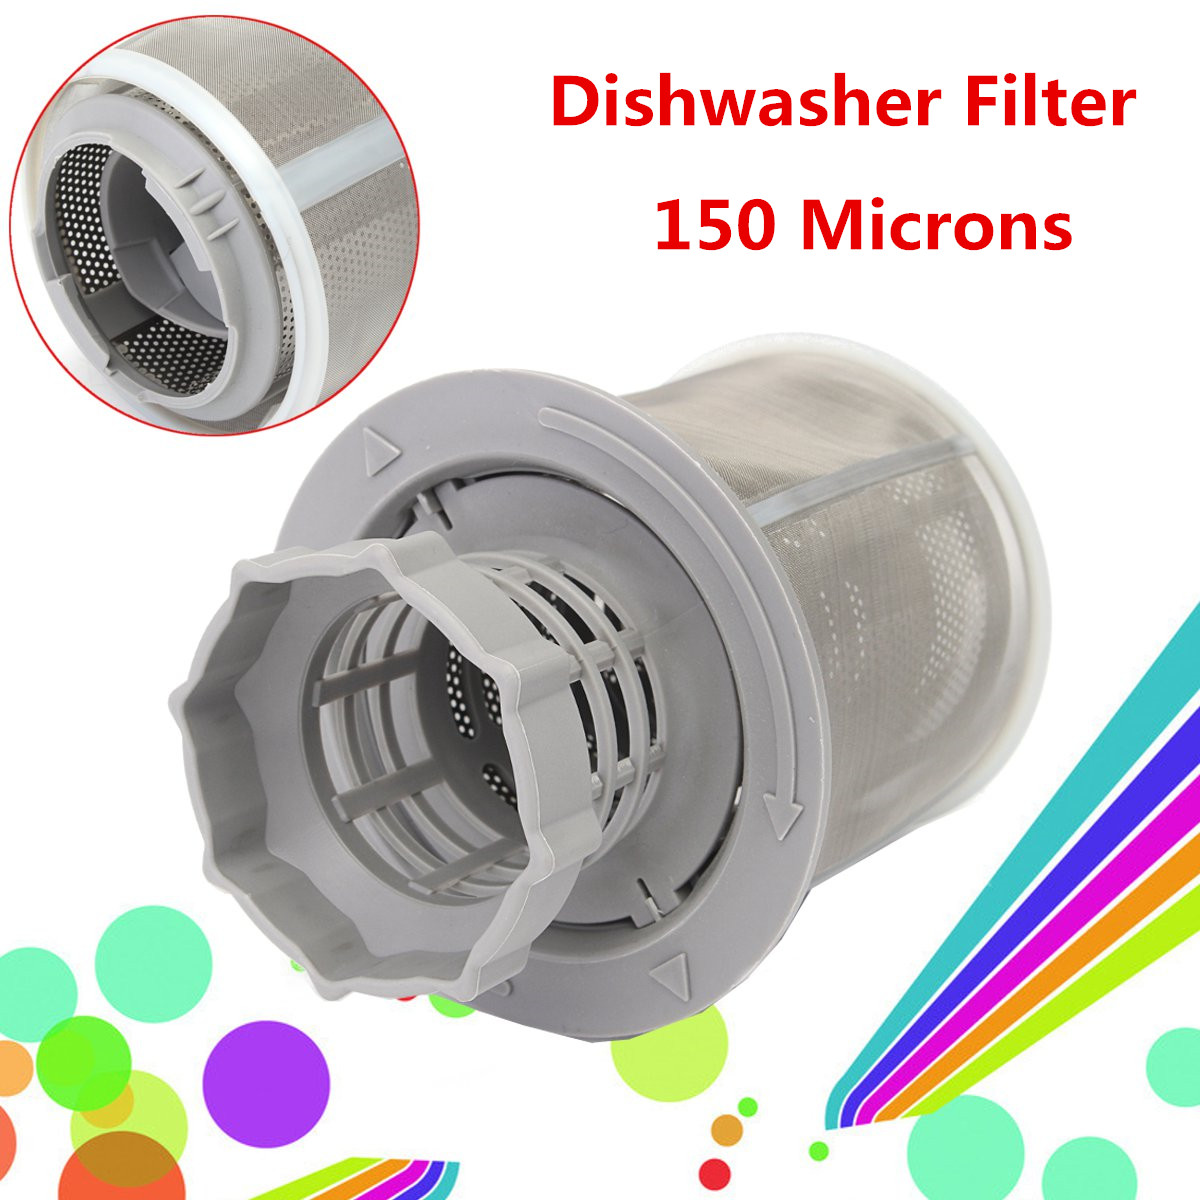 2 Part Dish Washer Mesh Filter Set Grey Inner Screen Filters Dish-washing Machine Replacement  for Kitchen Drains Tool Parts2 Part Dish Washer Mesh Filter Set Grey Inner Screen Filters Dish-washing Machine Replacement  for Kitchen Drains Tool Parts